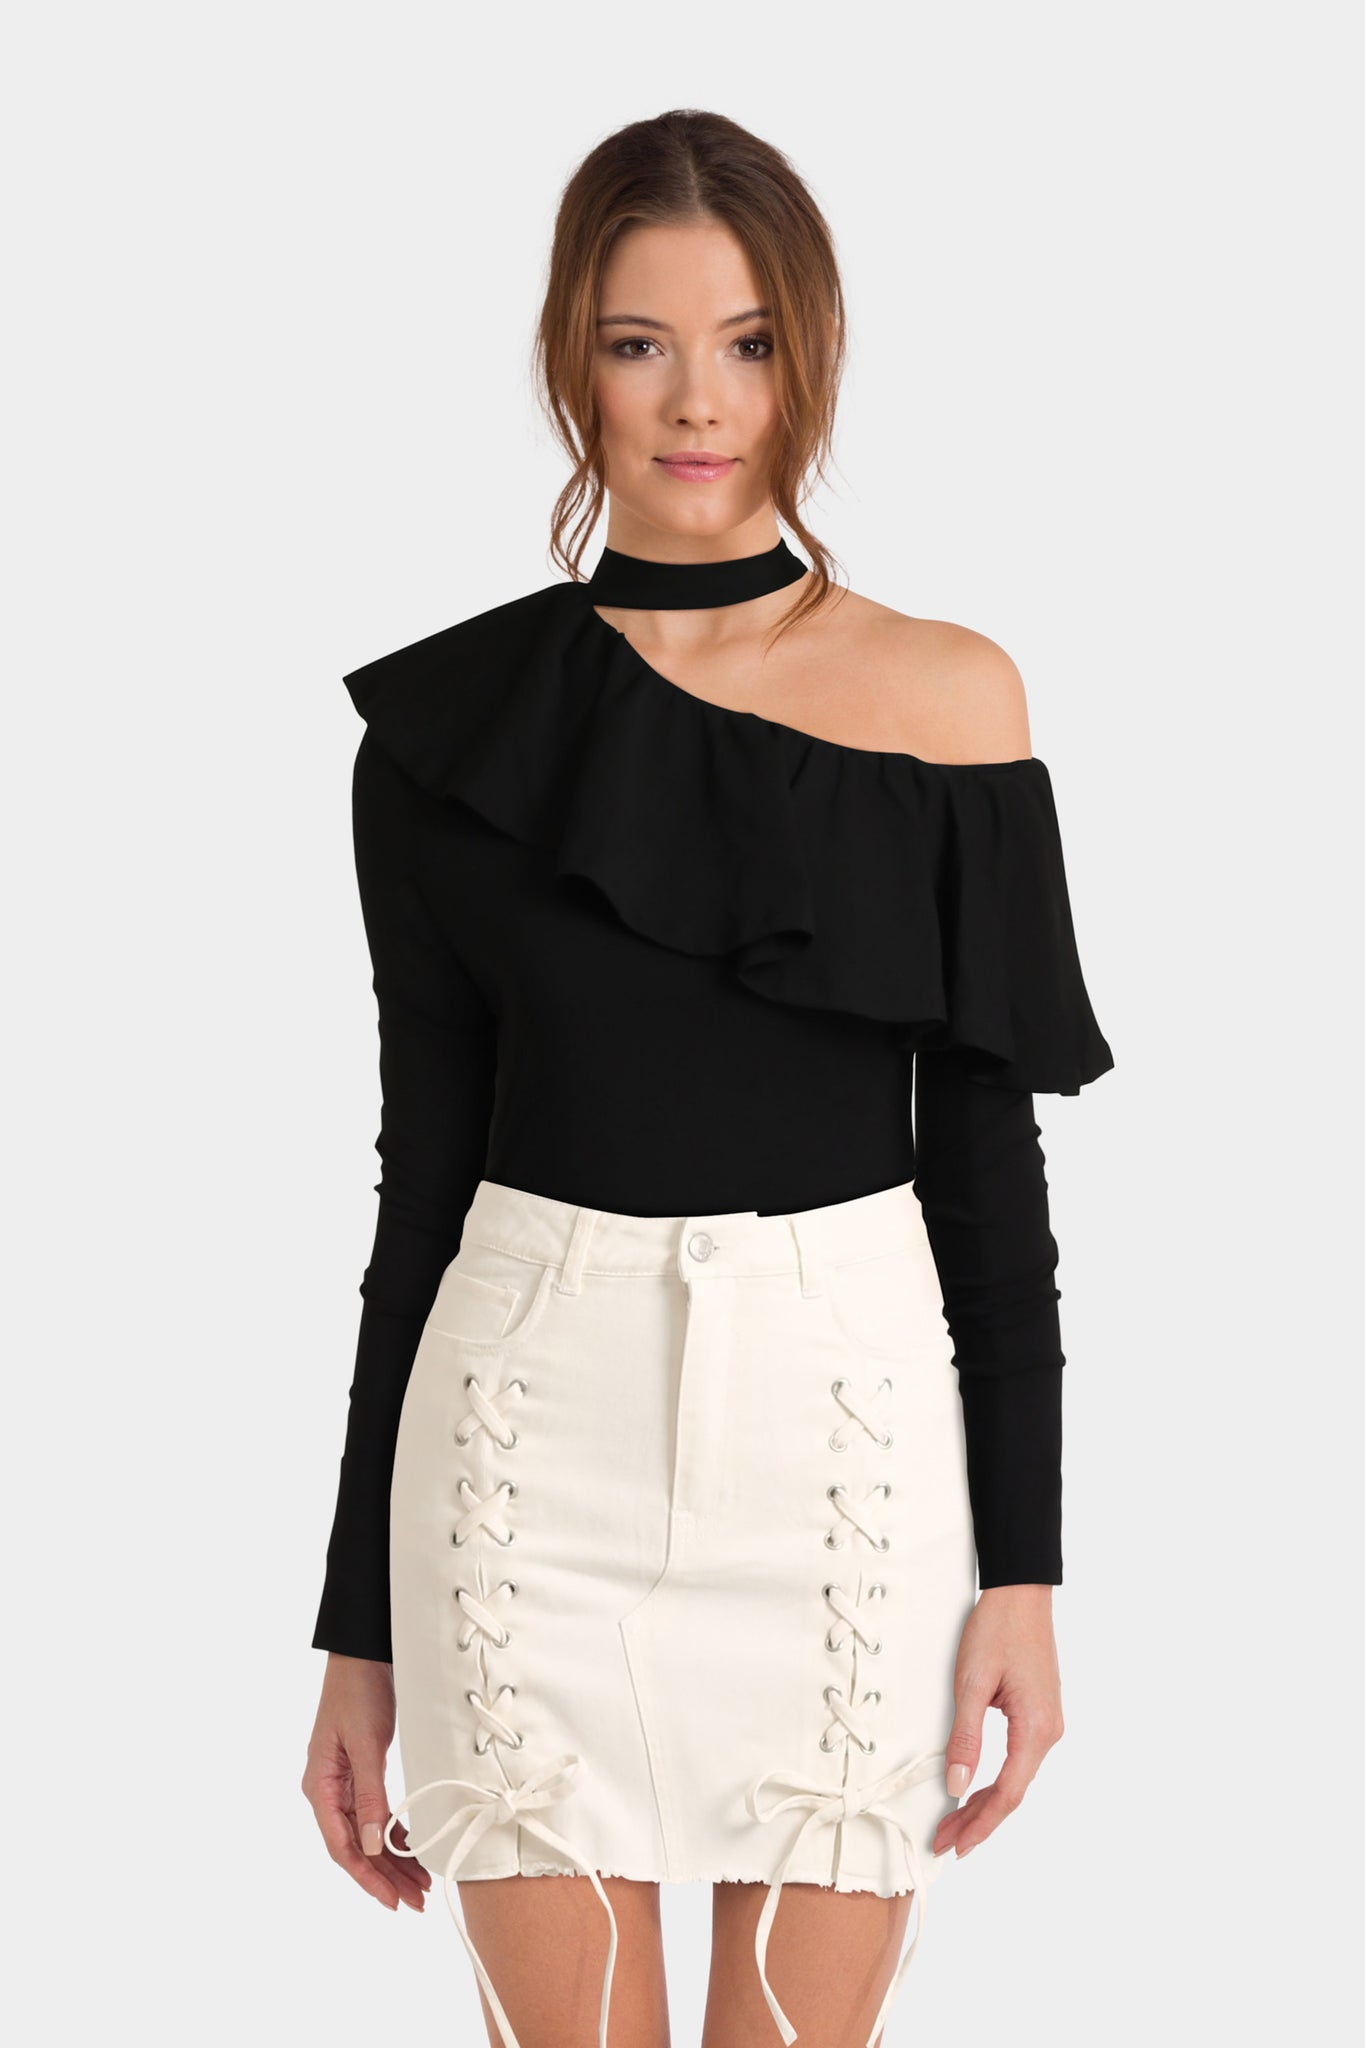 420d67c4e5d54 ASOS Tall Off Shoulder Top with Choker and Ruffle – TRY METAIL